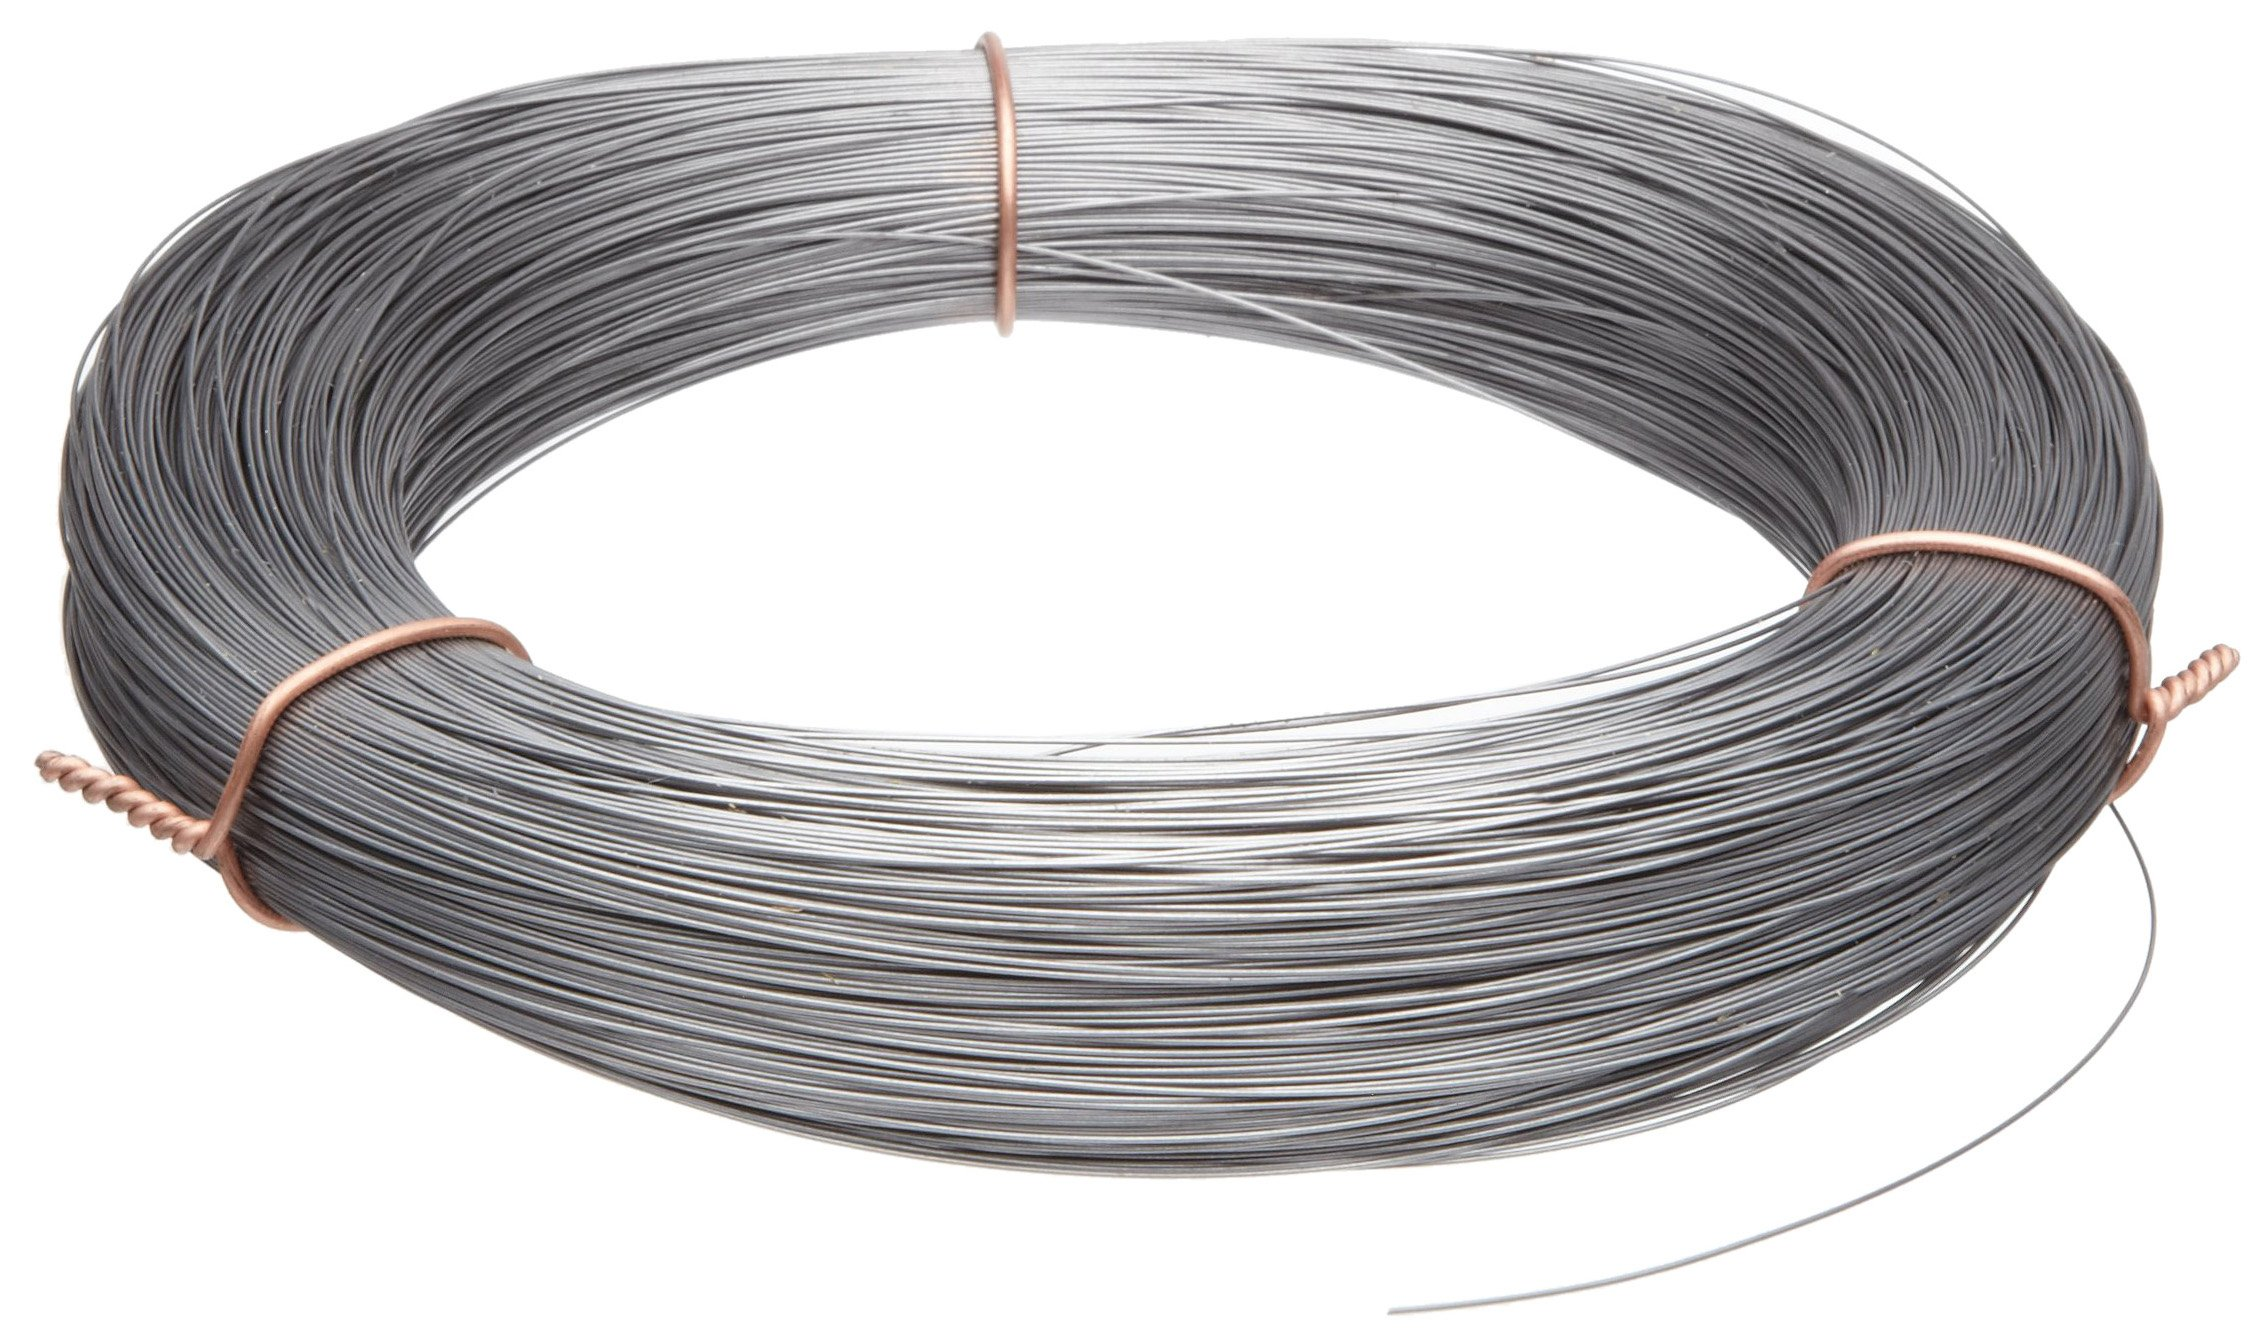 High Carbon Steel Wire, Mill Finish #2B (Smooth) Finish, Grade #2B Smooth, Full Hard Temper, Meets ASTM A228 Specifications, 0.008'' Diameter, 5853' Length, Precision by Small Parts